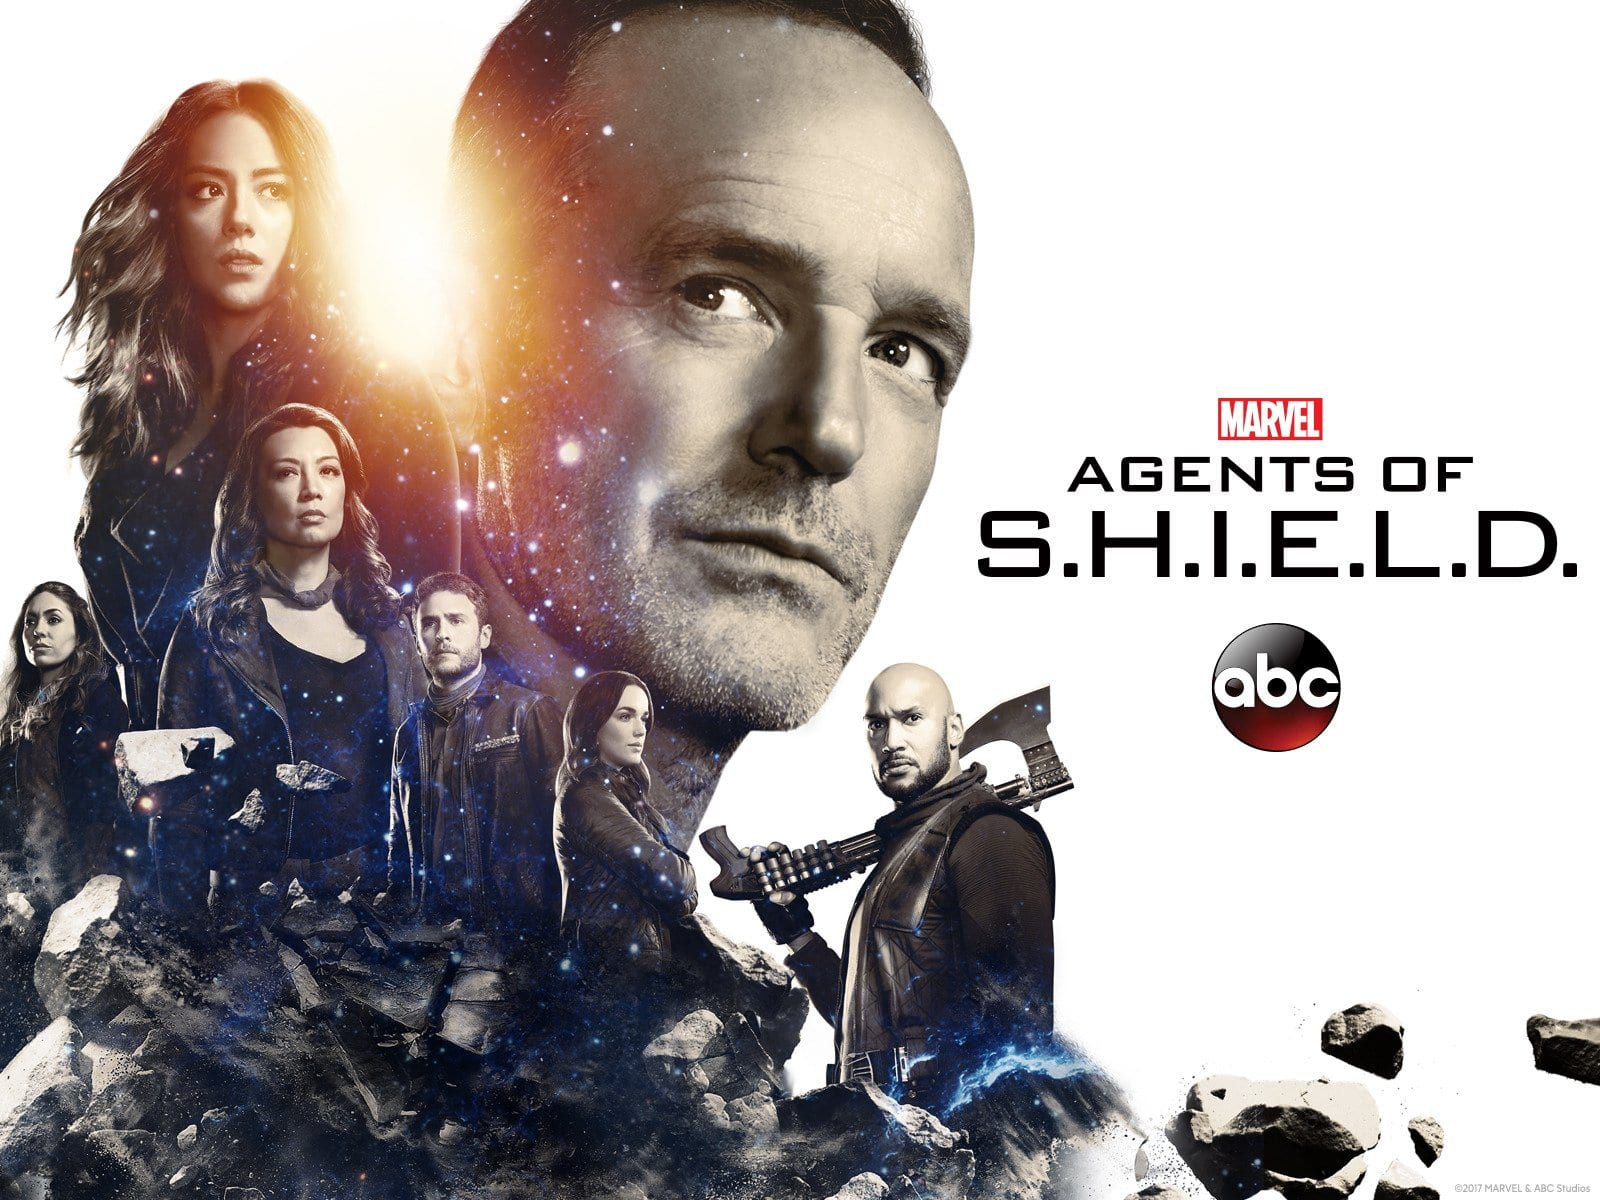 Marvel's Agents of S.H.I.E.L.D. bekommt 6. Staffel